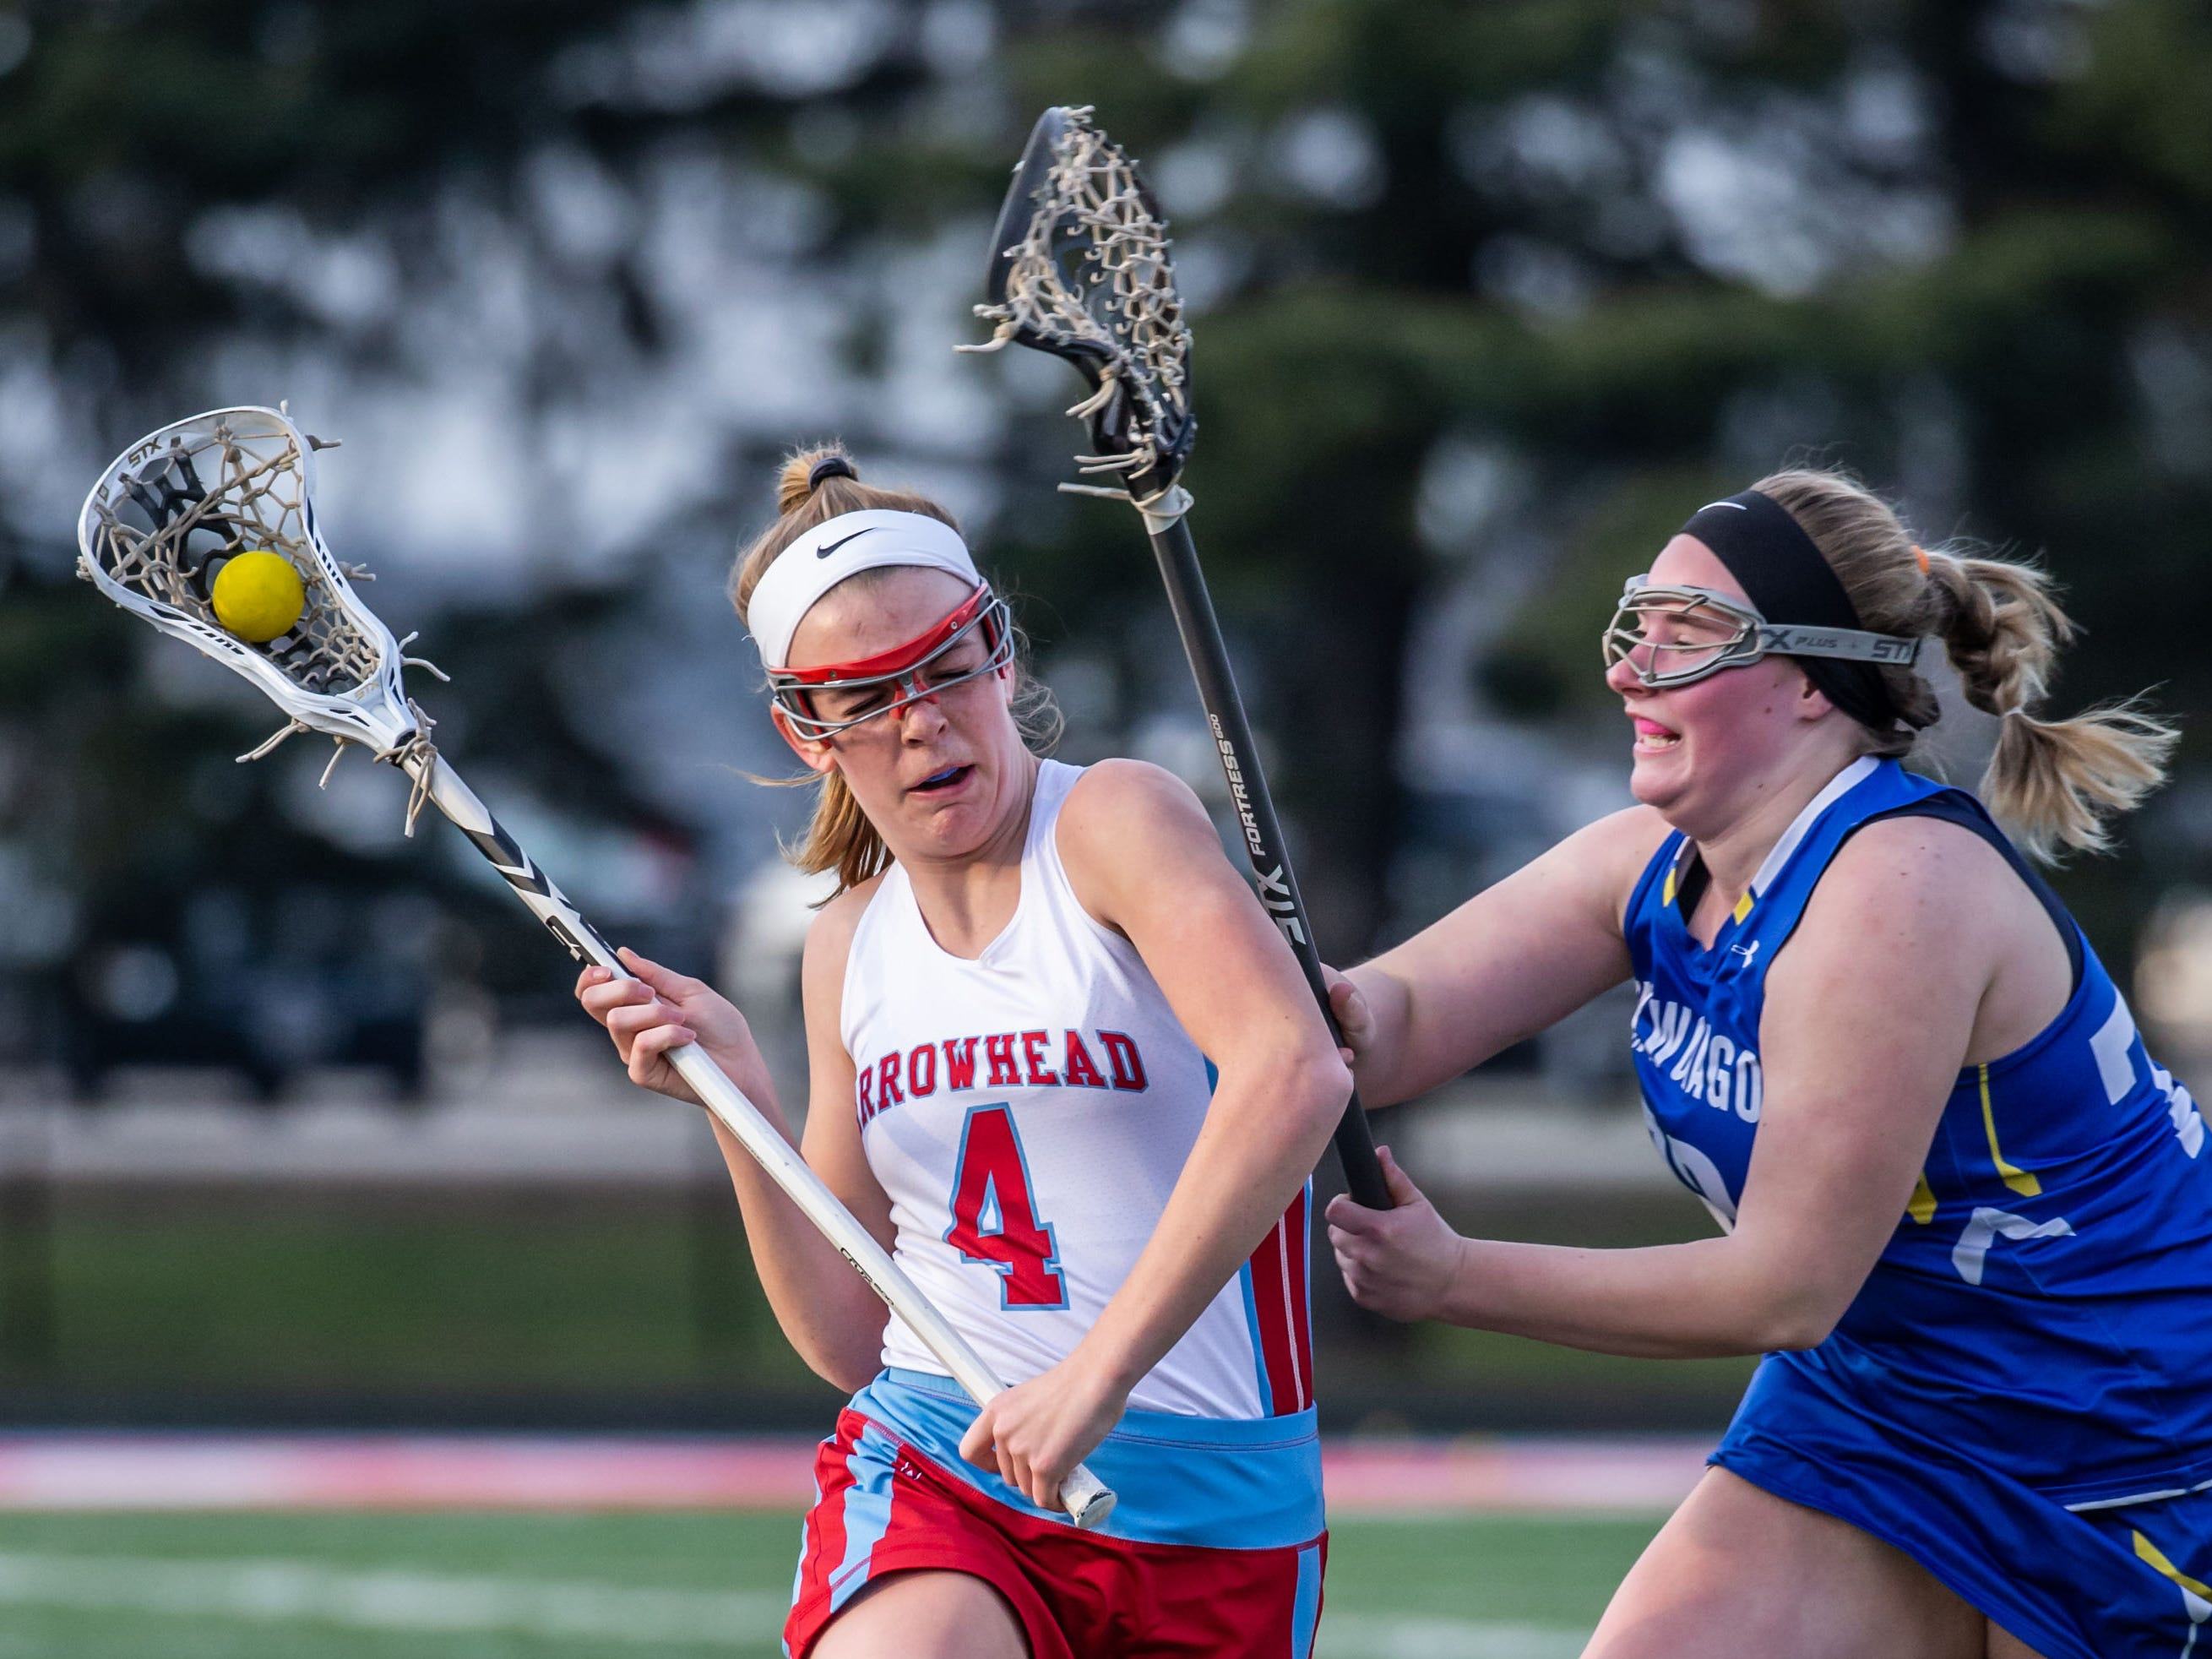 Arrowhead's Kylee Manser (4) battles to get past Mukwonago's Kaylee Graves (78) during the game at Arrowhead on Tuesday, April 16, 2019.